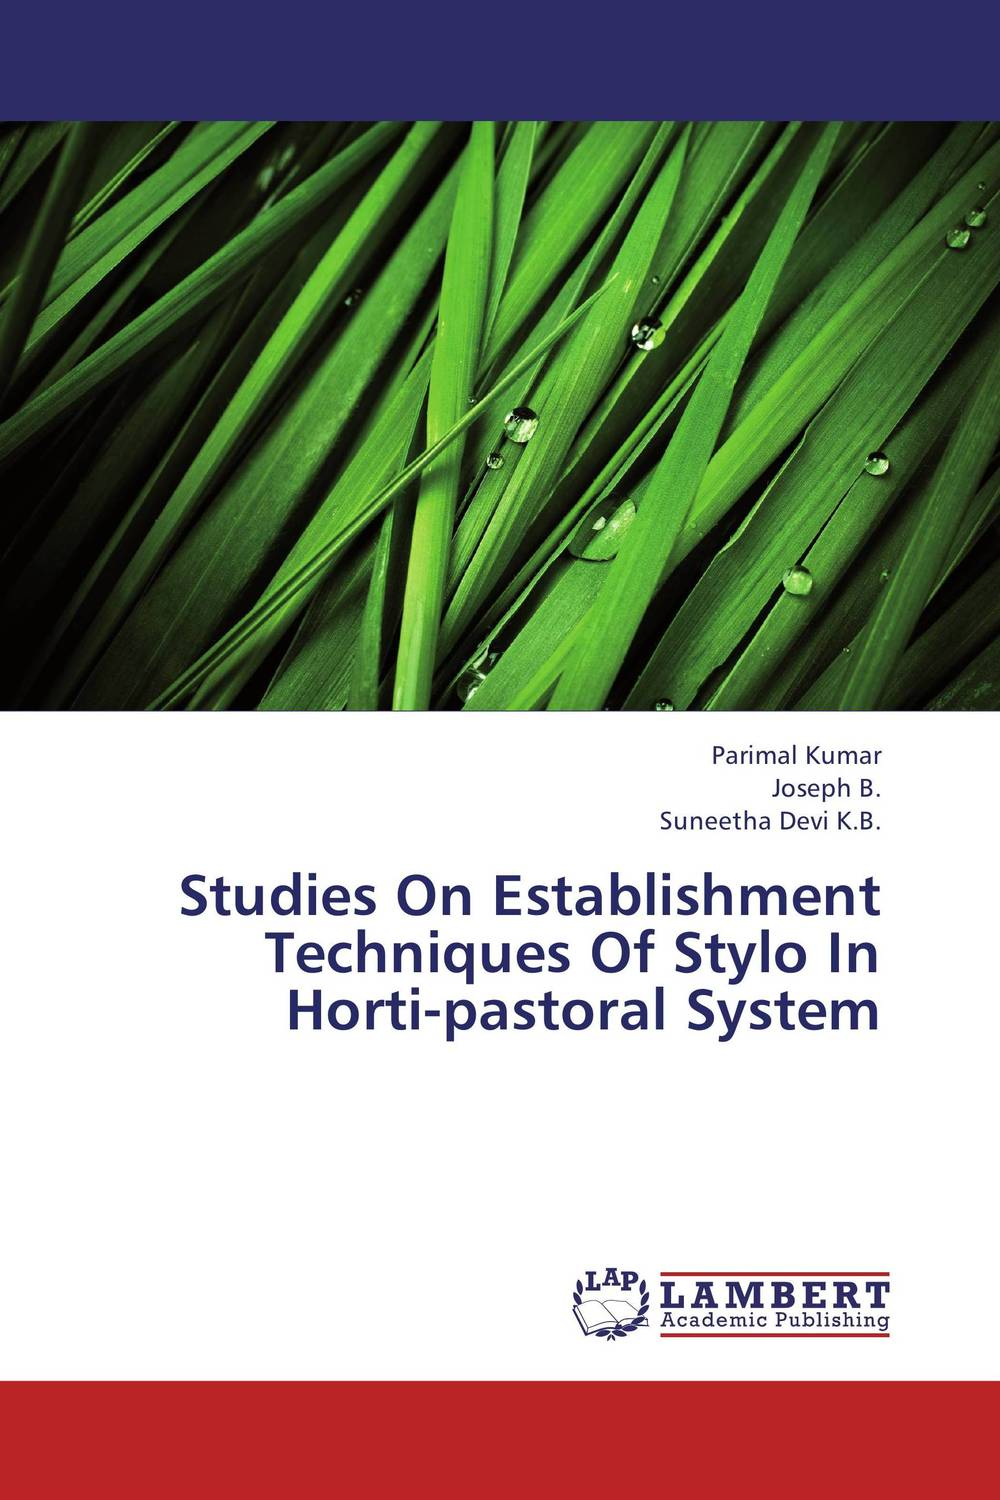 Studies On Establishment Techniques Of Stylo In Horti-pastoral System rs232 to rs485 converter